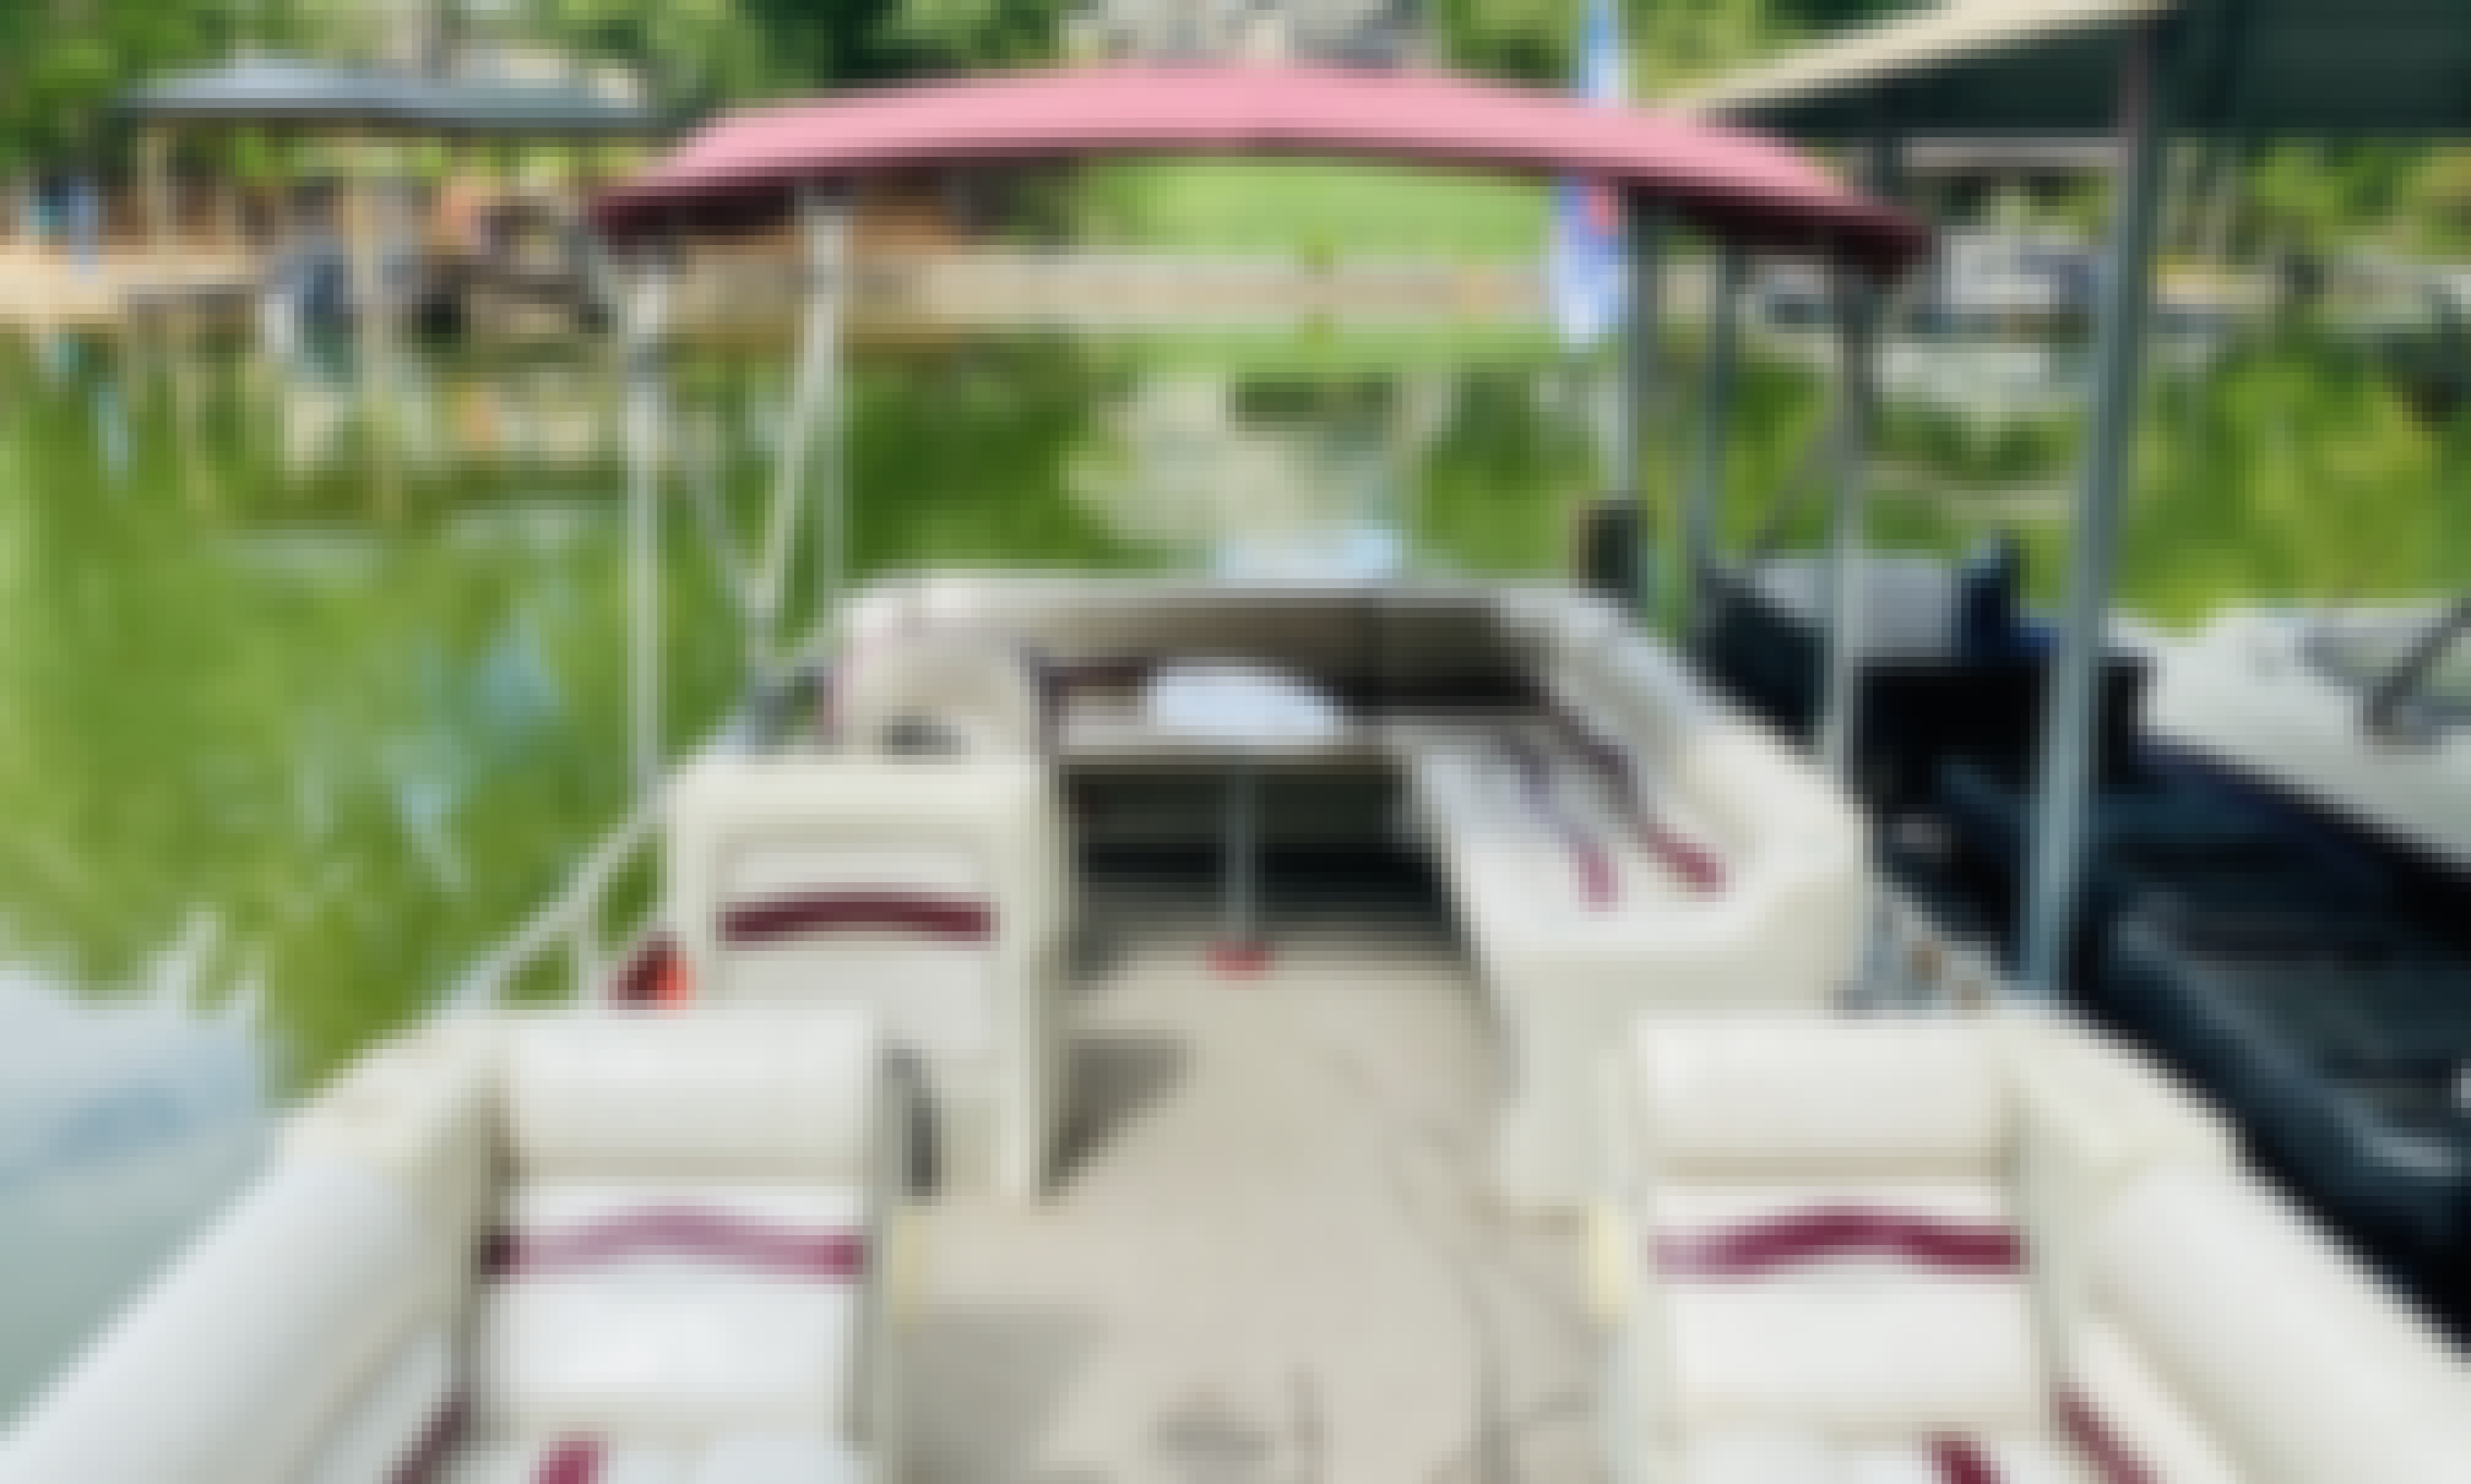 Awesome 12 Passenger Pontoon Boat For Rent in Huntersville